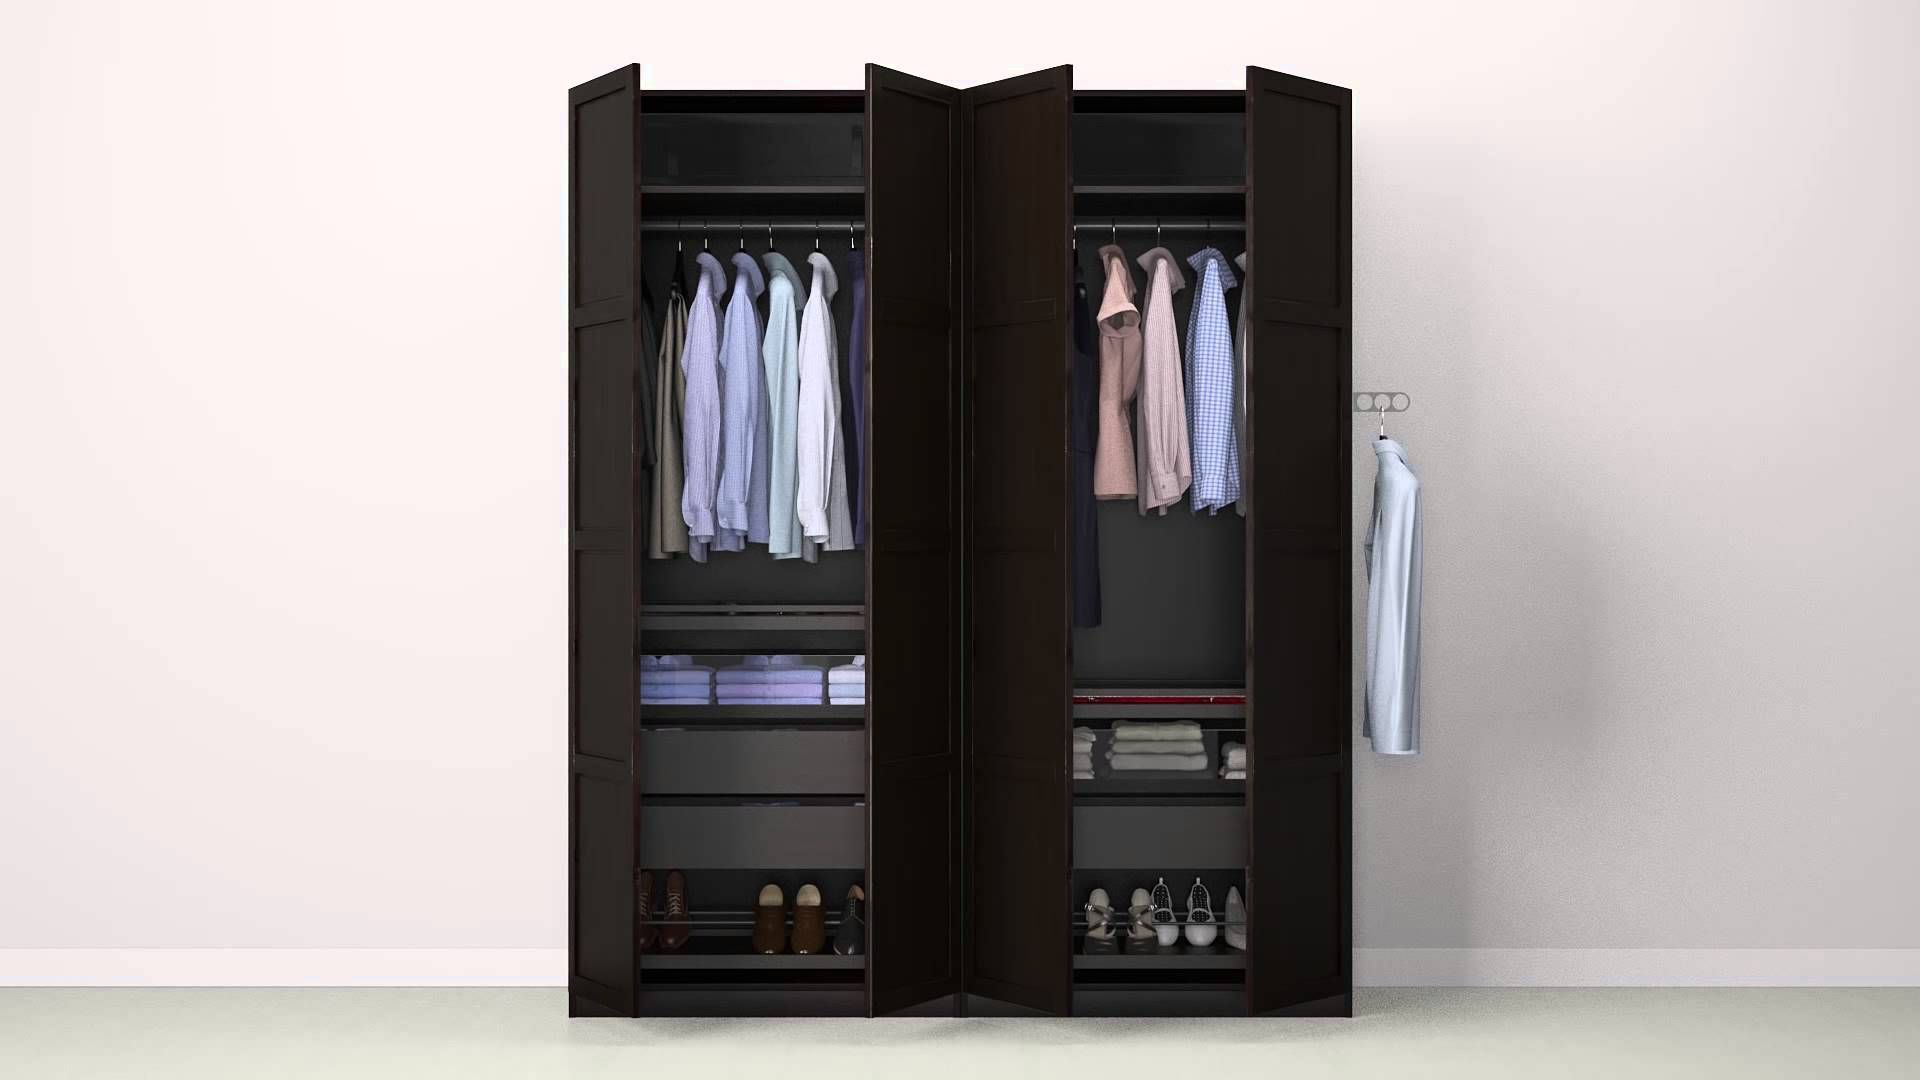 Ikea Pax Wardrobe Organiser Examples  Google Search  Bedroom Enchanting Ikea Design Your Own Bedroom Inspiration